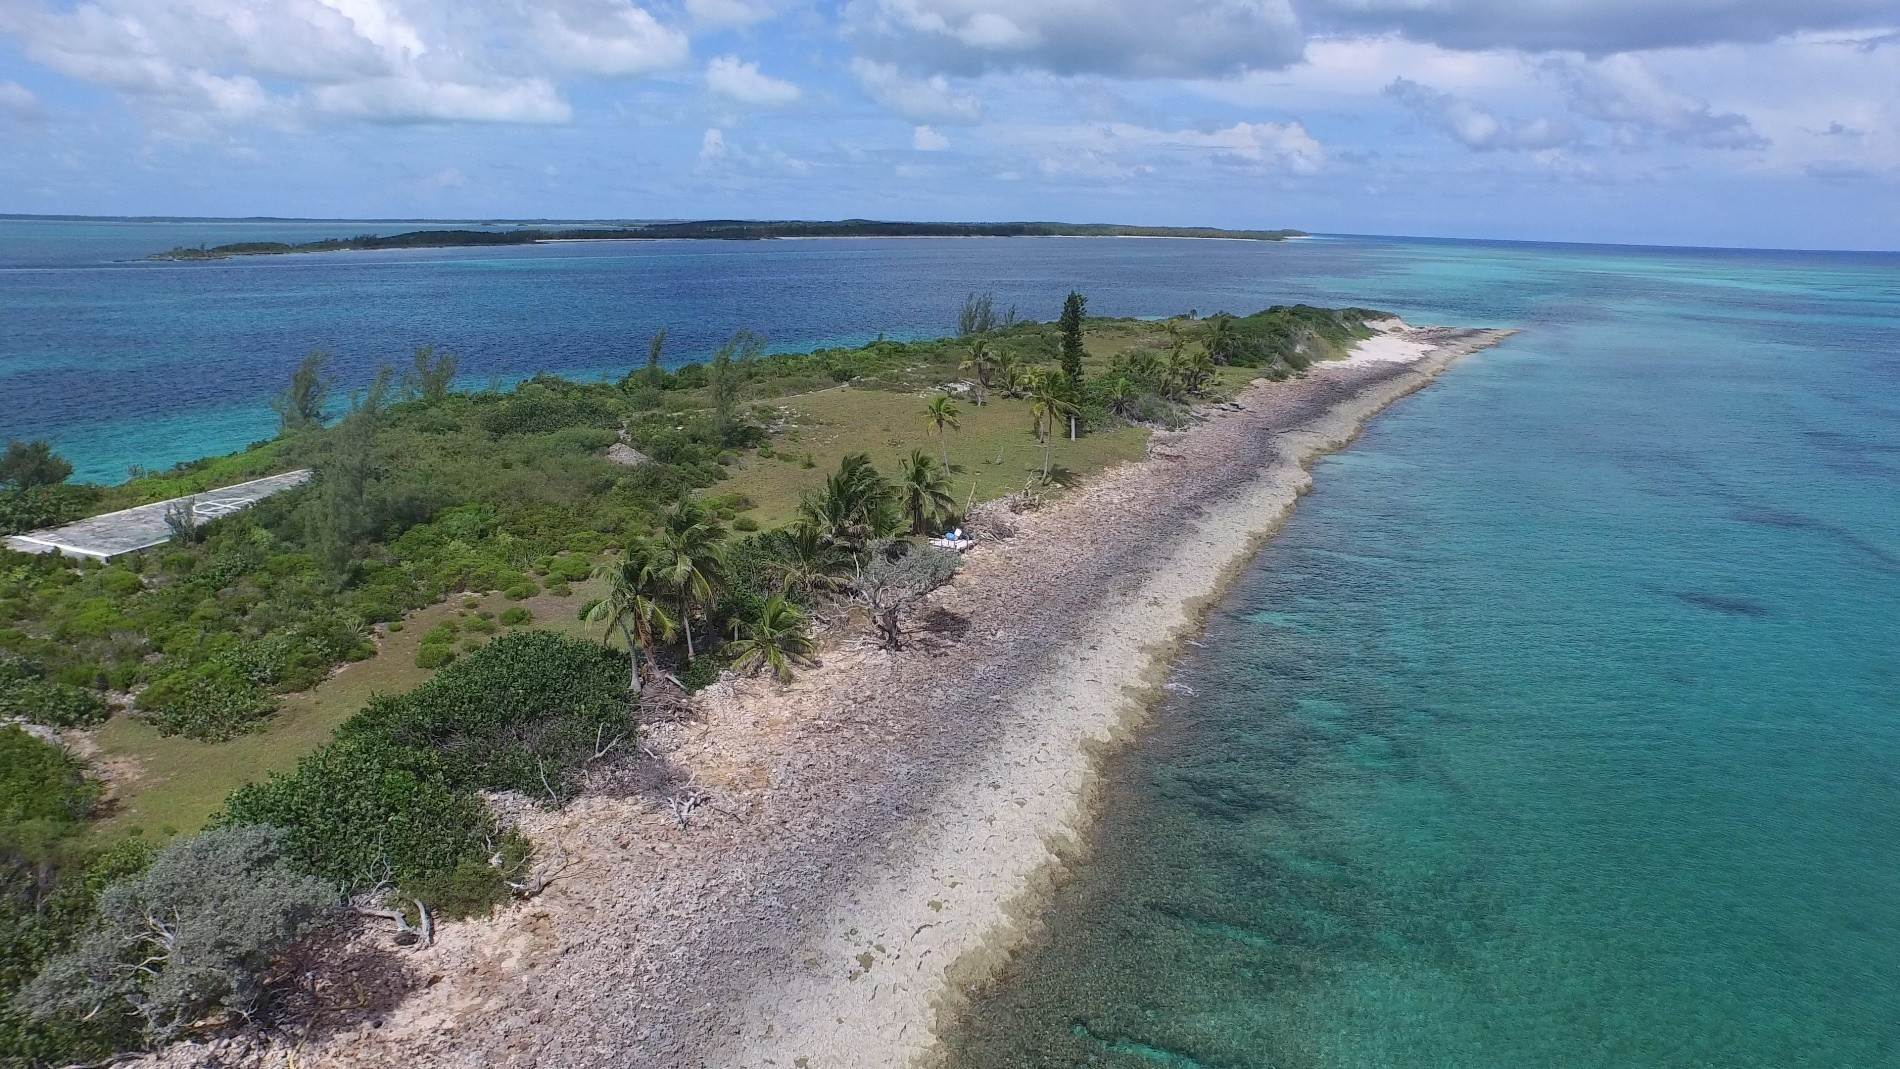 18. Private Islands for Sale at Pierre Island, A Perfect Private Retreat Island Near Harbour Island - MLS 40806 Harbour Island, Eleuthera, Bahamas